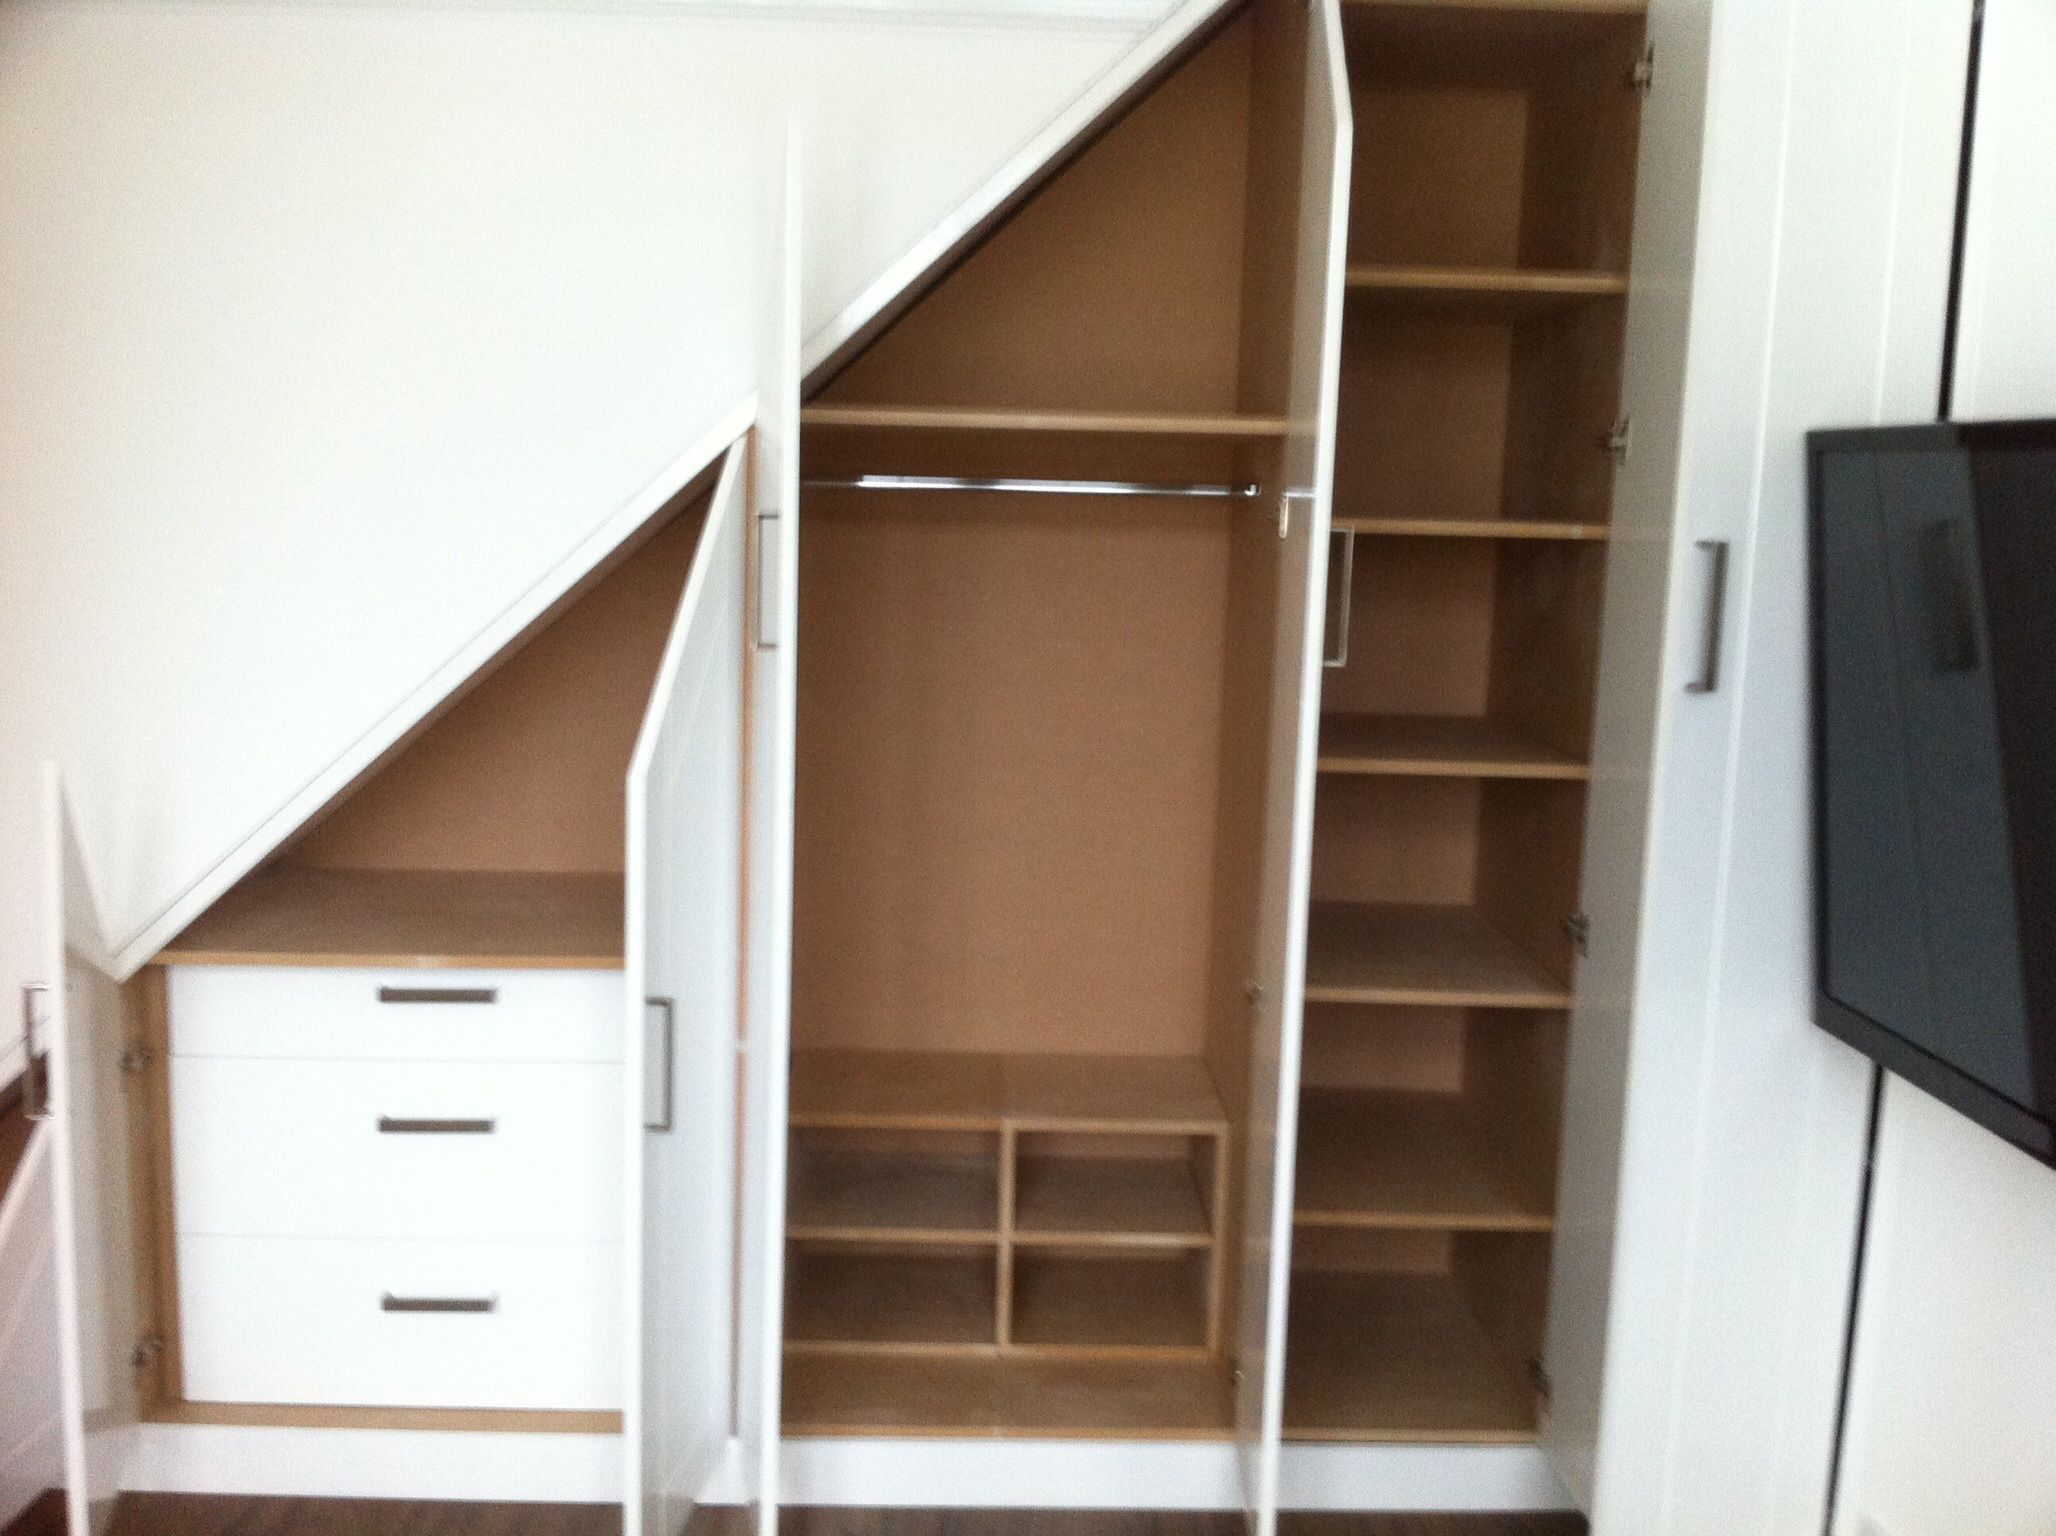 internal carcass of under stairs built in wardrobe. Black Bedroom Furniture Sets. Home Design Ideas